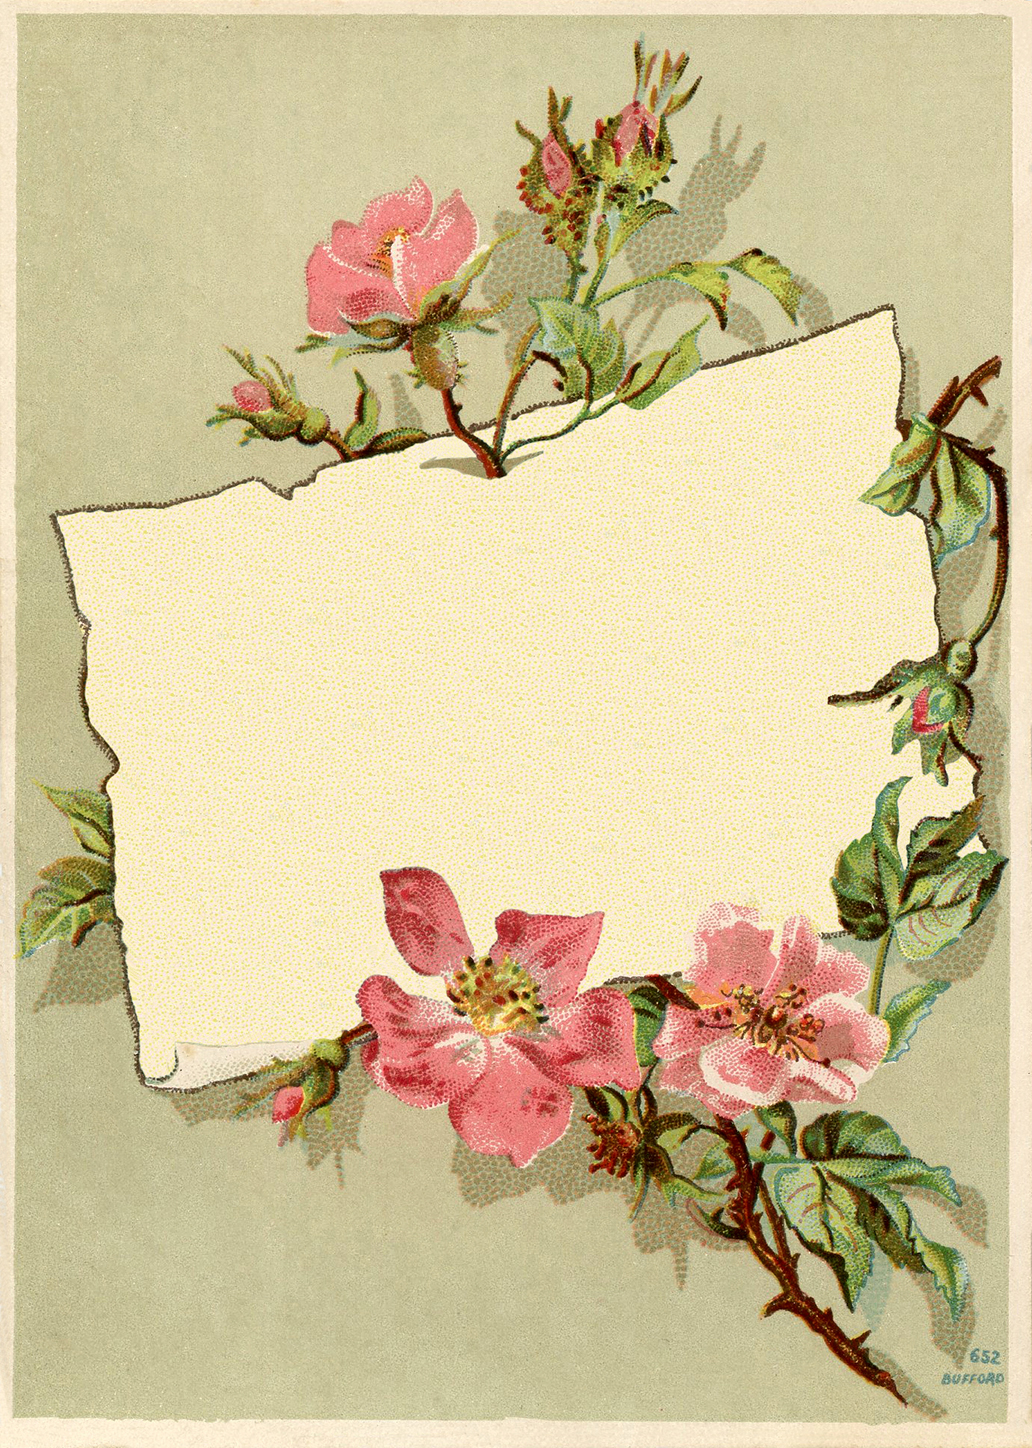 Vintage rose frame images the graphics fairy for How to make vintage frames